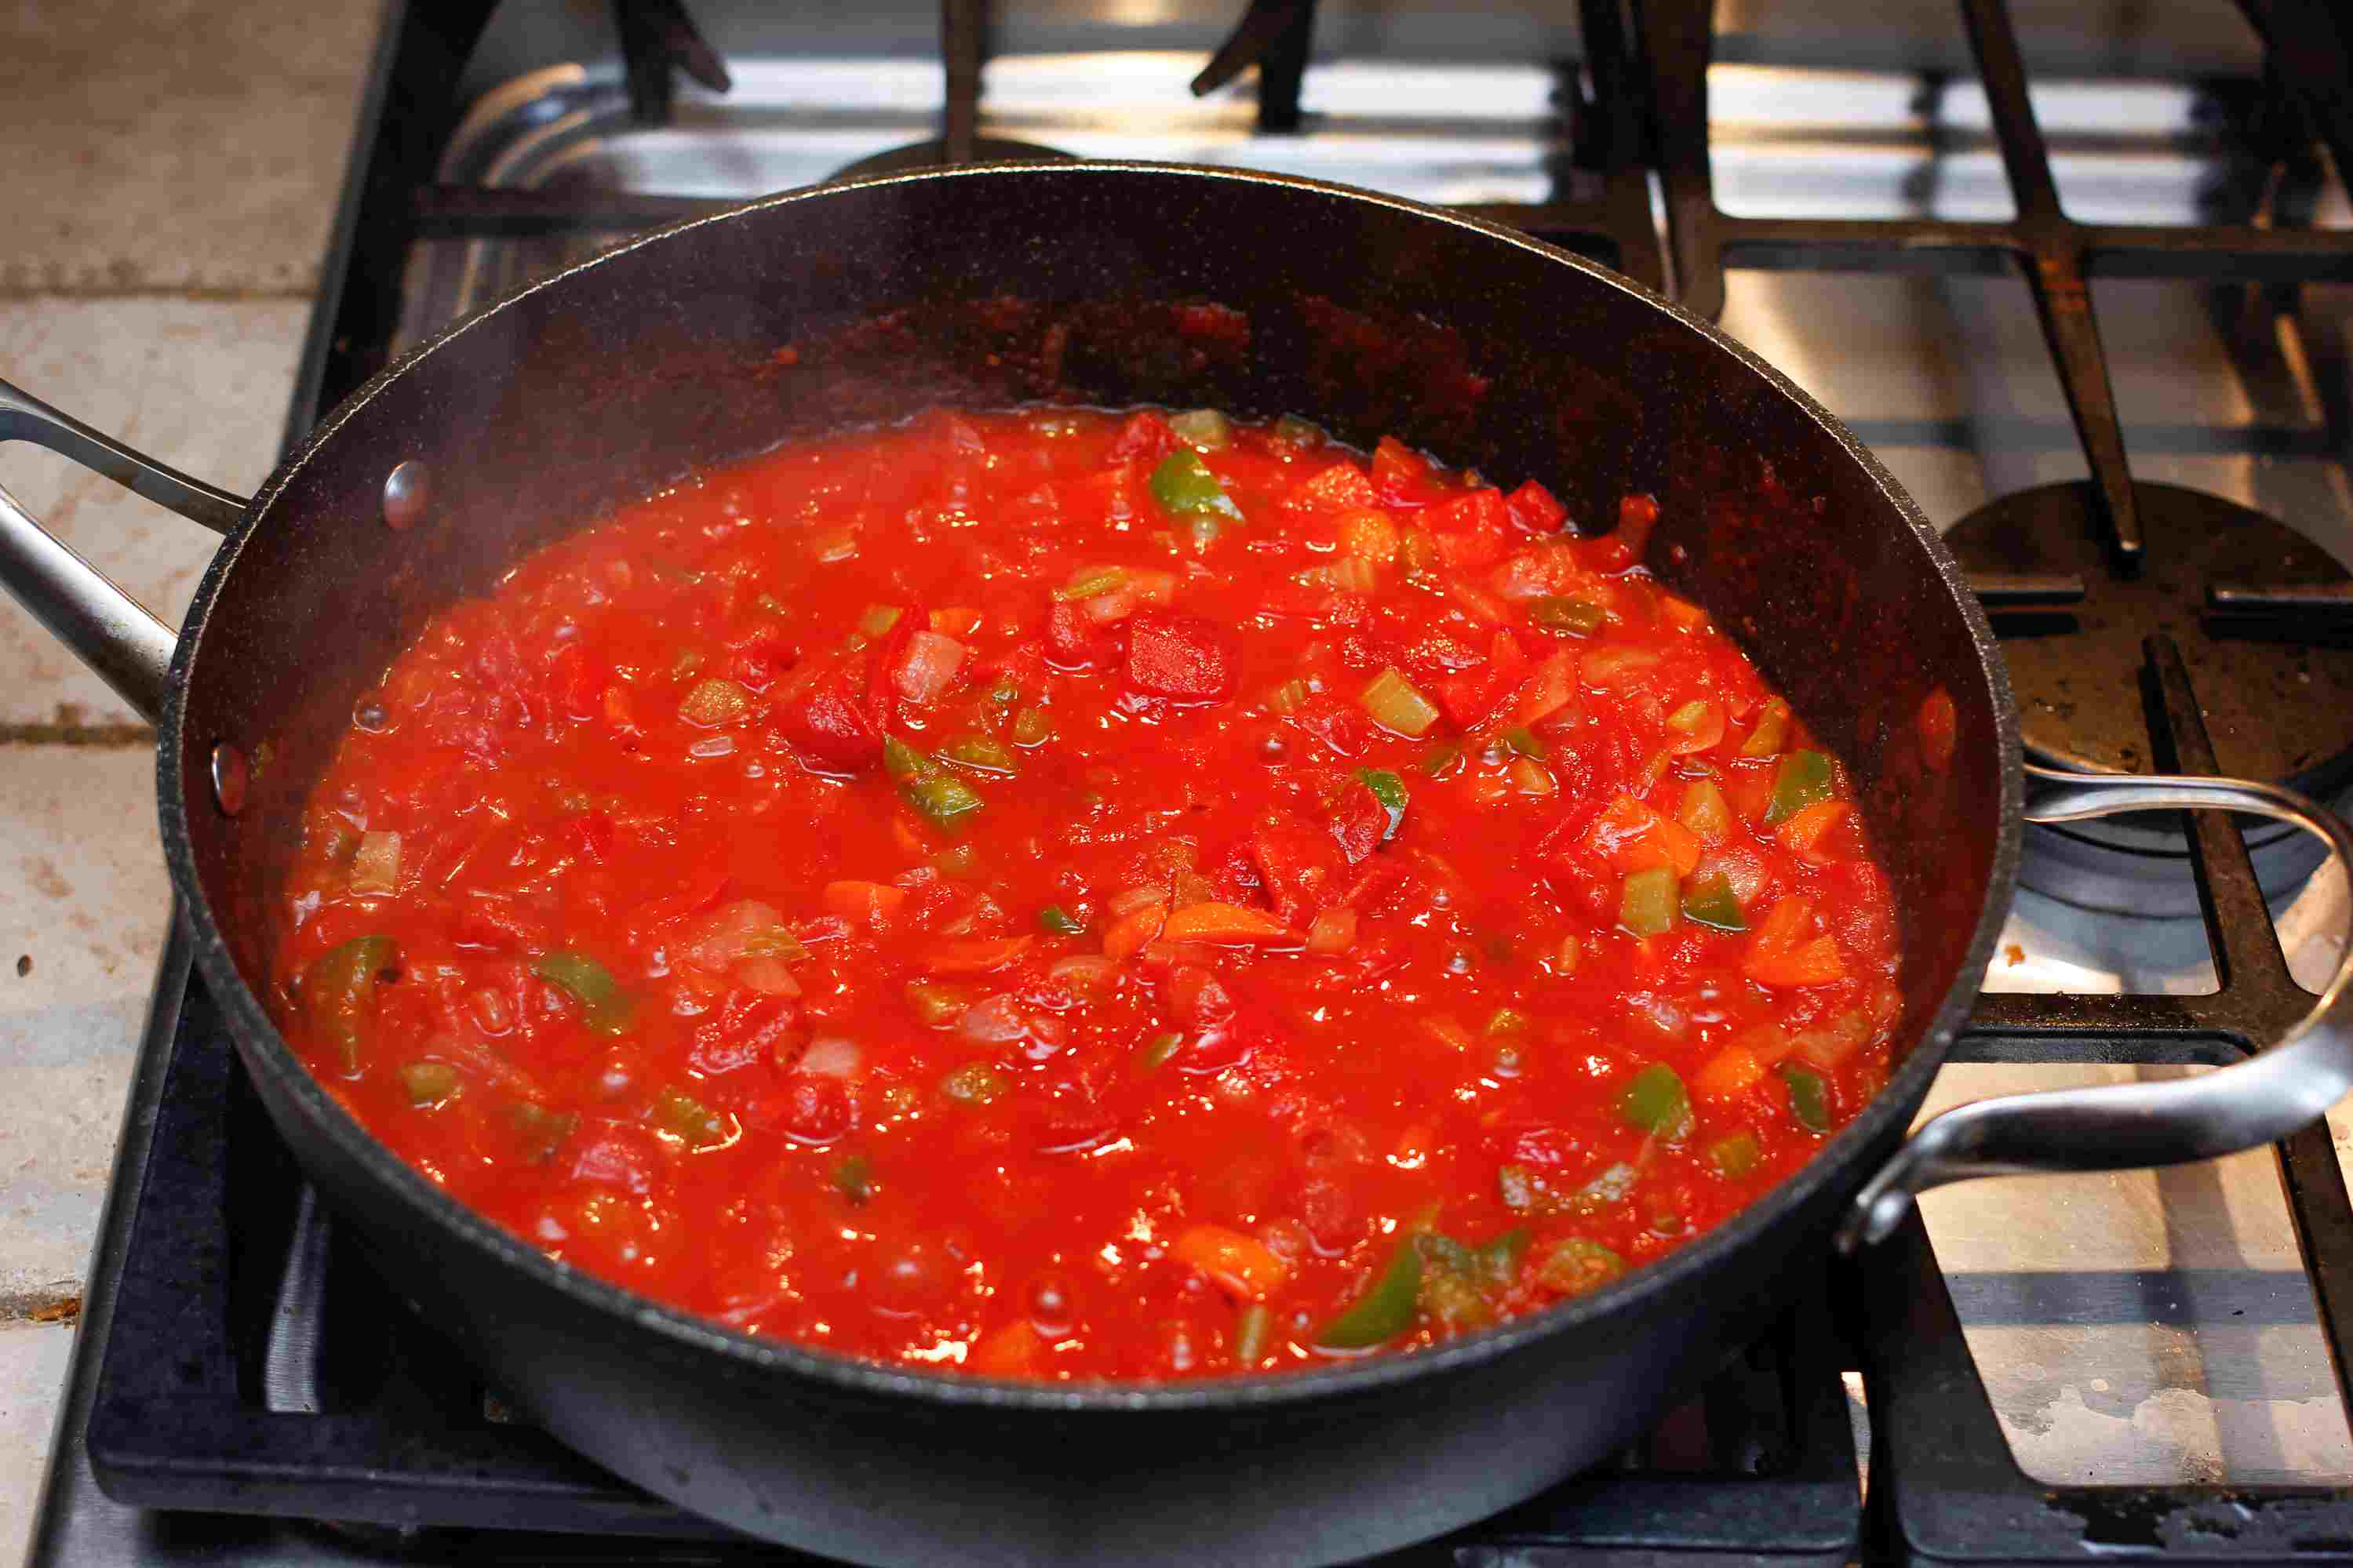 Tomatoes and tomato sauce in a saucepan with chopped veggies